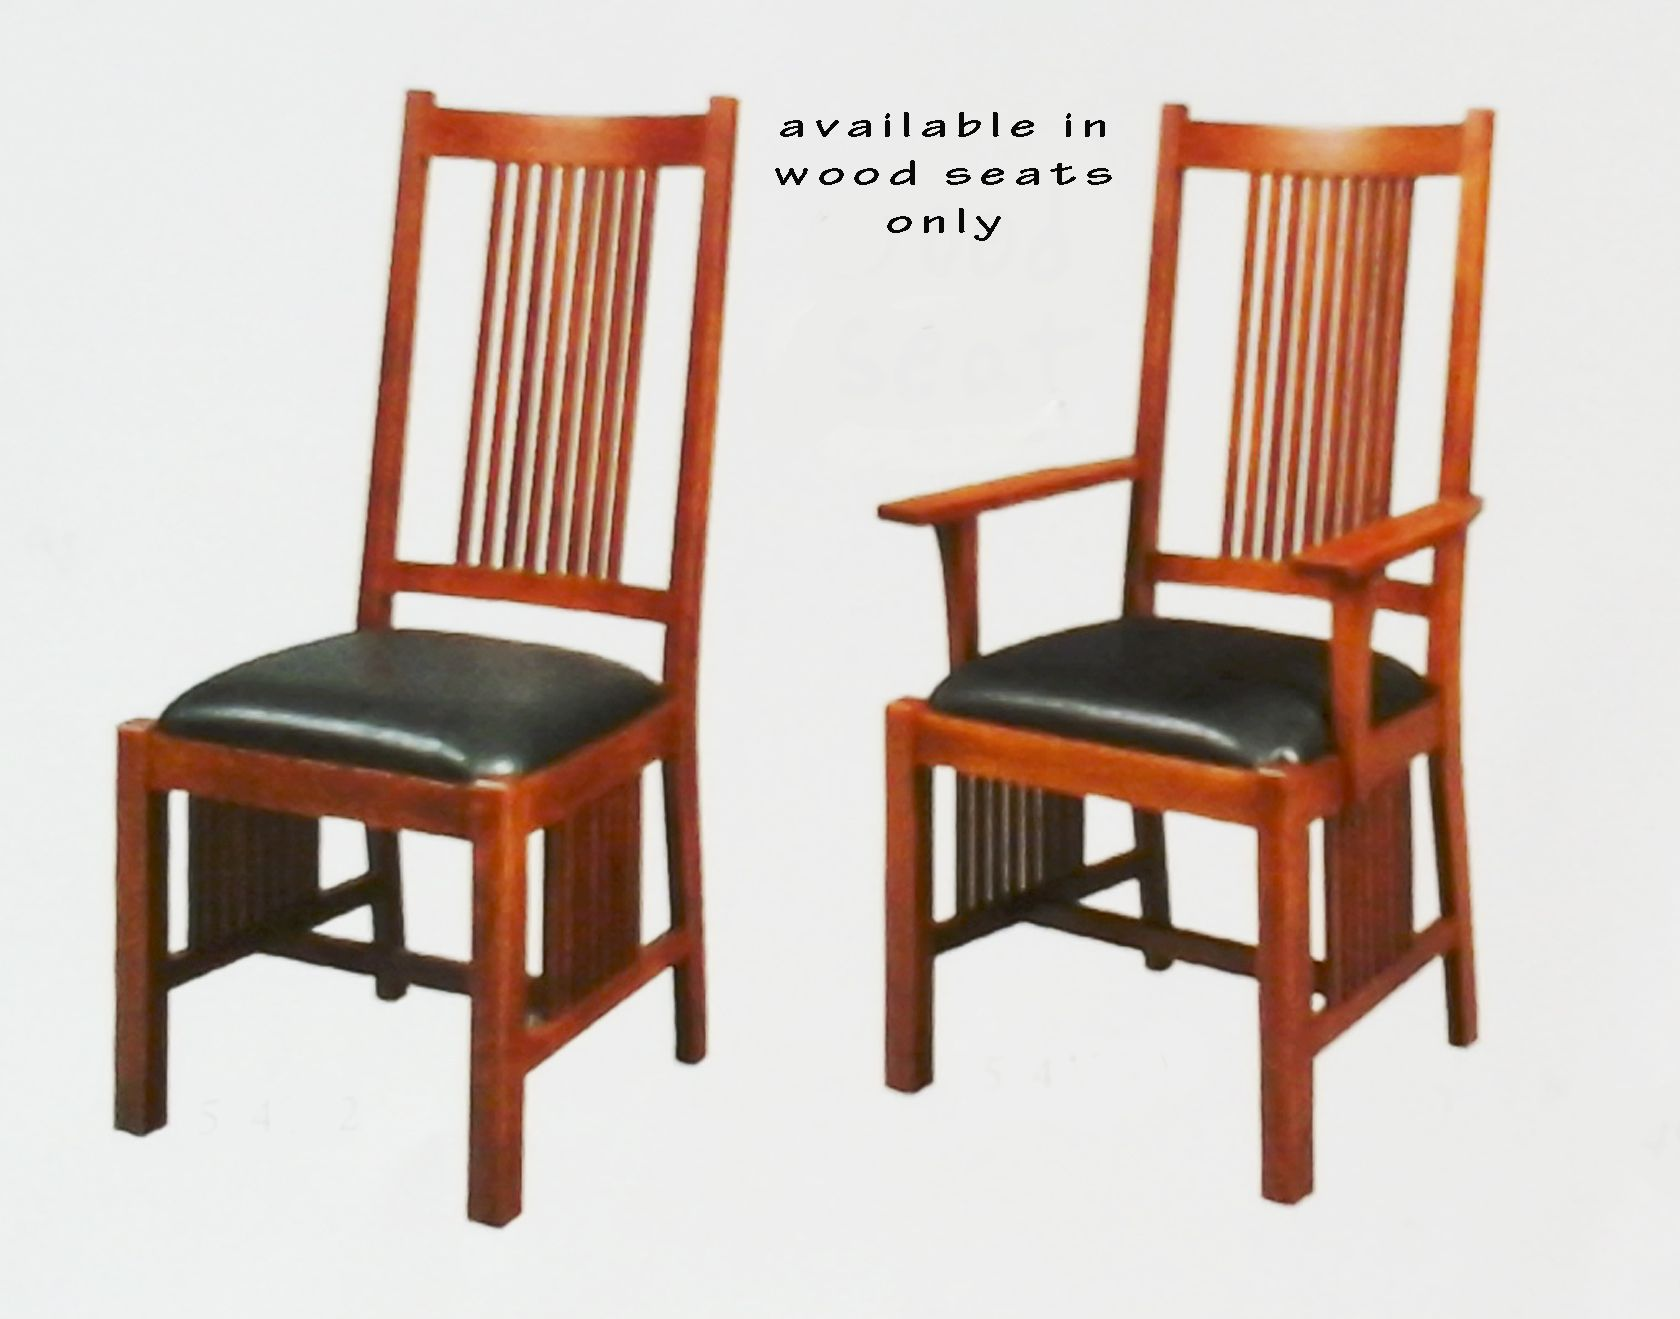 Woodland Side And Arm Chairs With Wood Seats Only